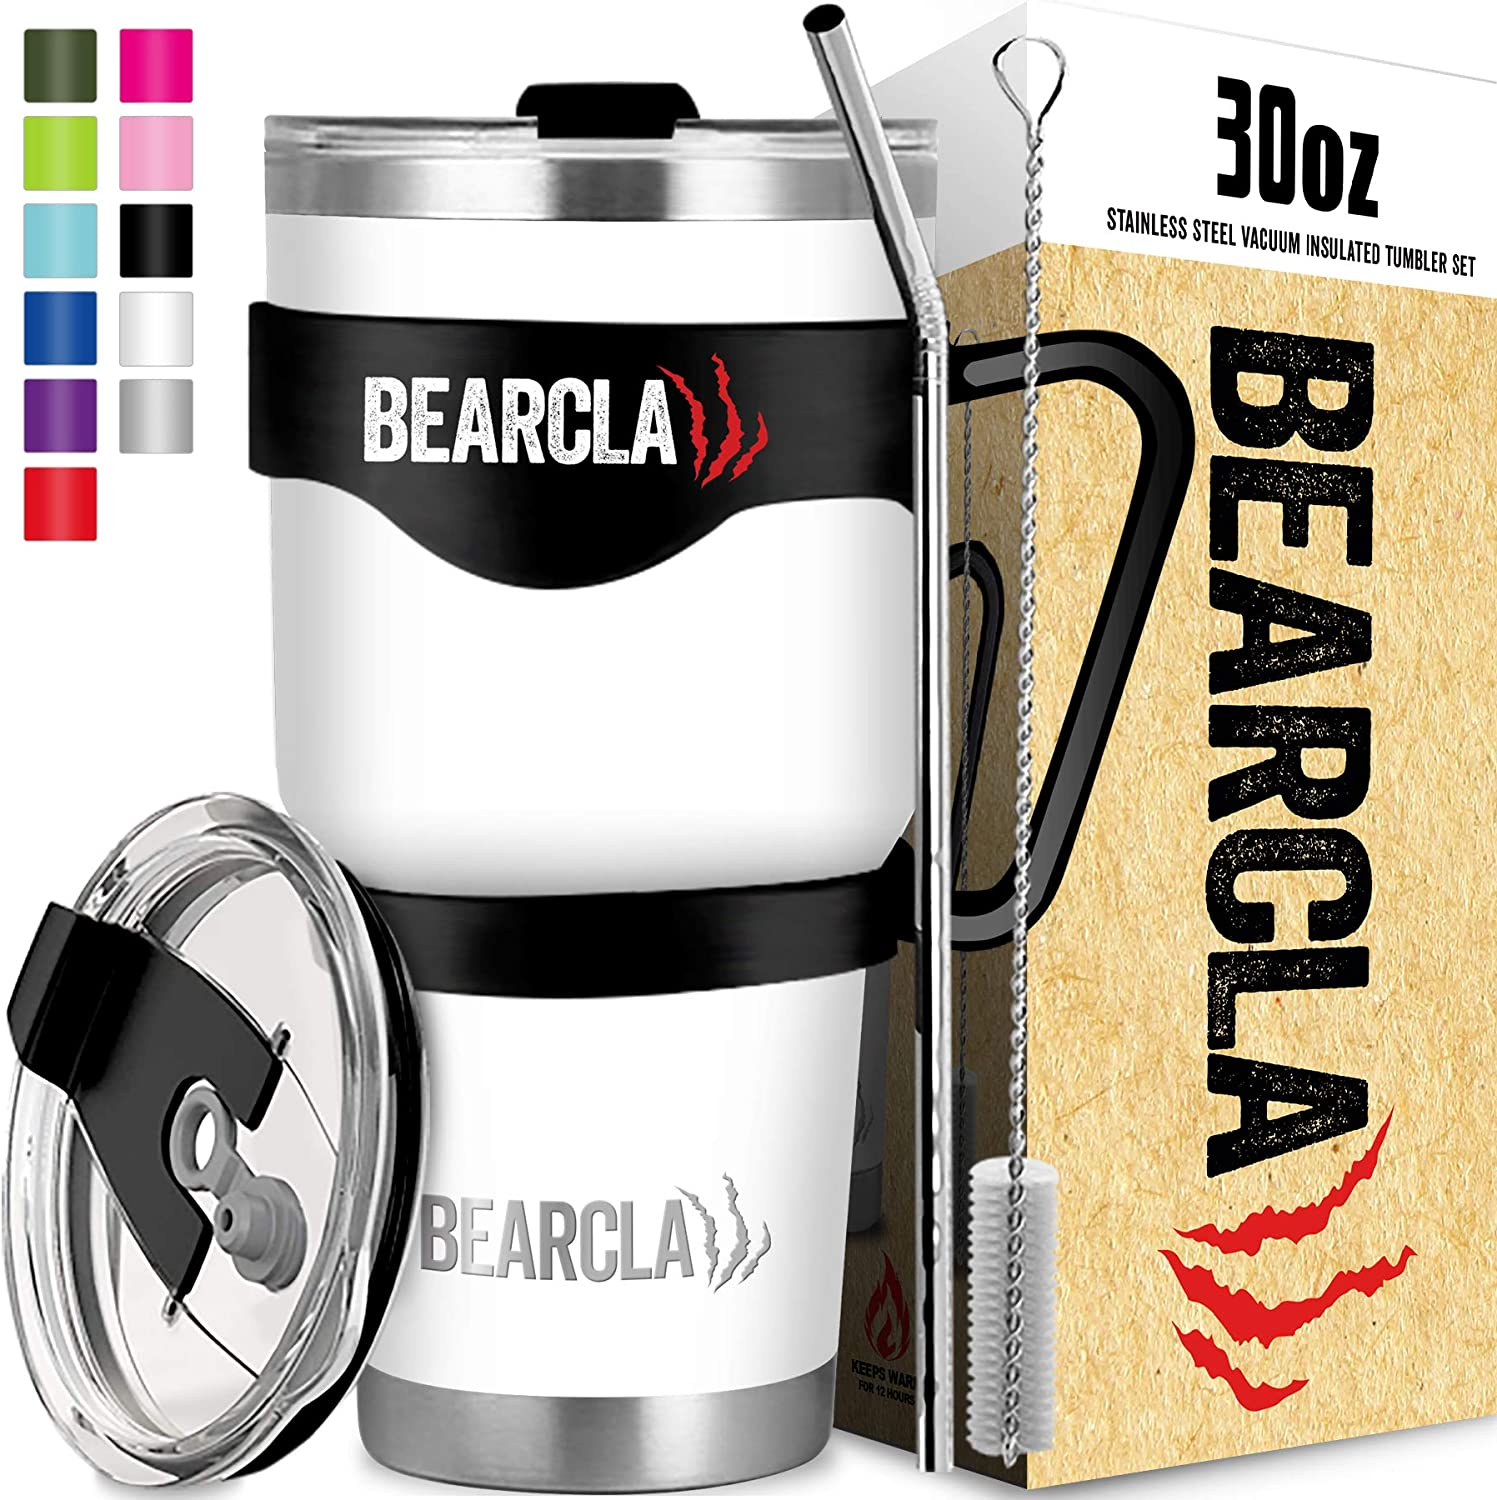 MalloMe BEARCLAW 30 oz White Stainless Steel Vacuum Insulated 6-Piece Tumbler Set